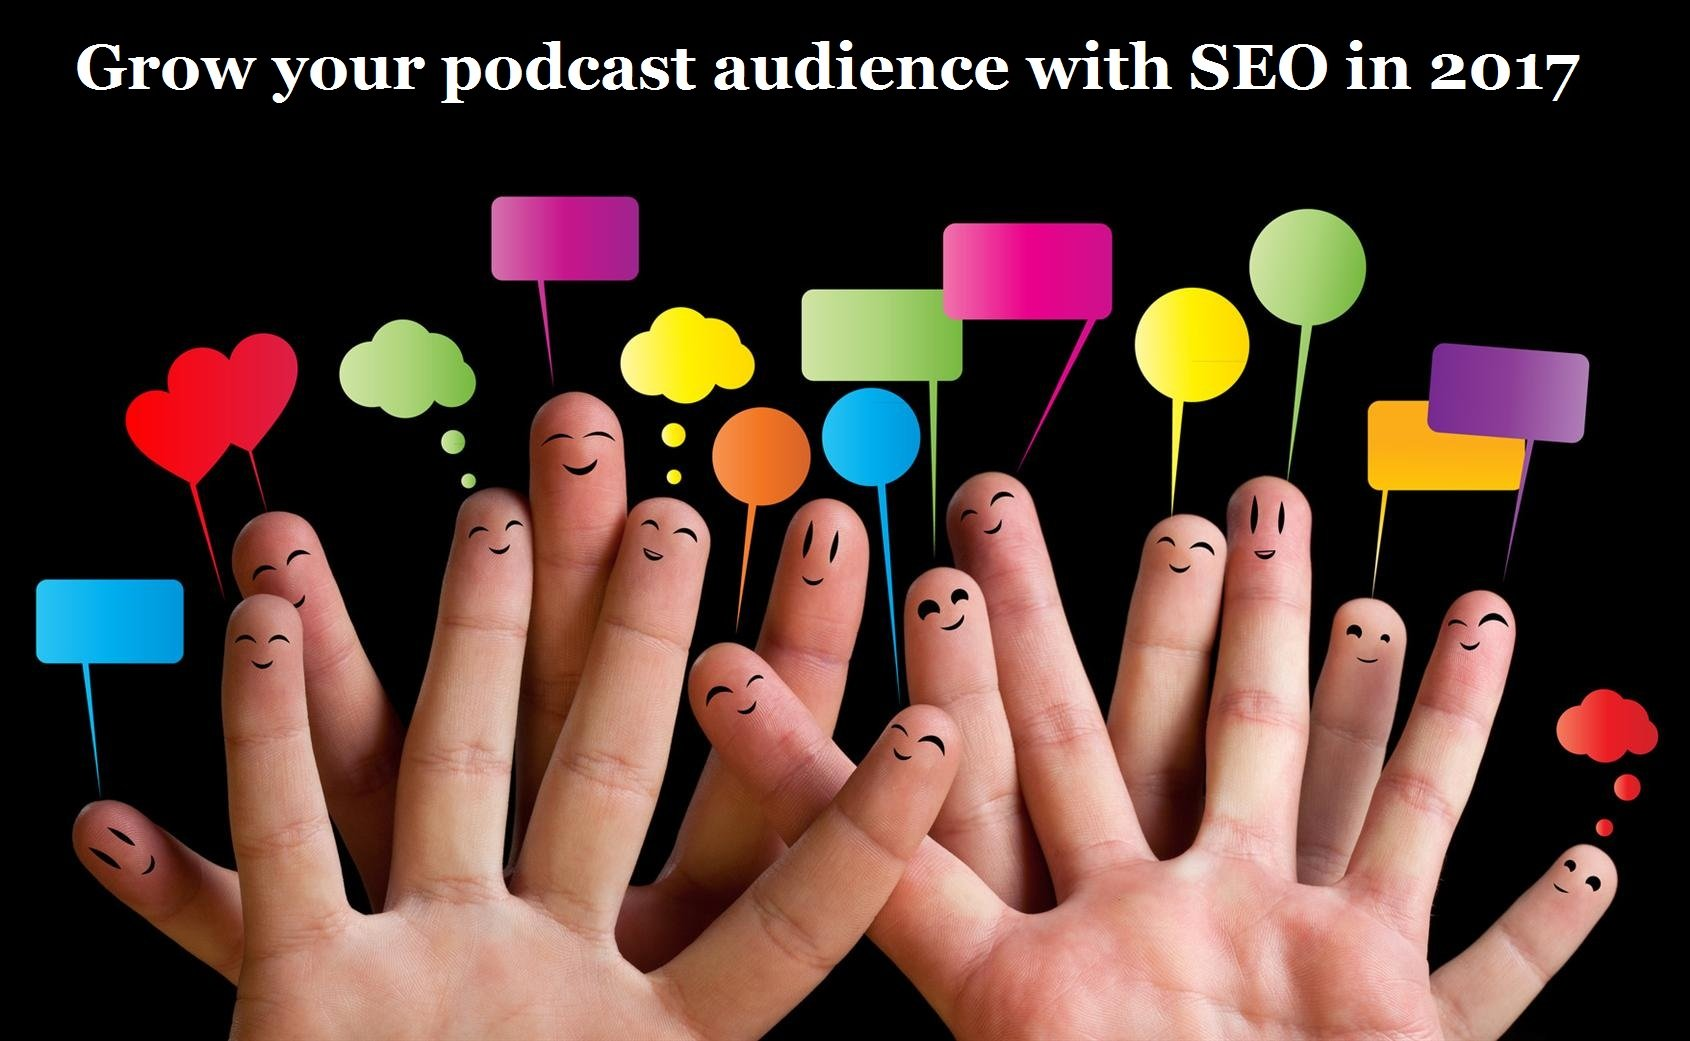 5 Ways To Grow Your Podcast Audience With SEO In 2017 | Improve Google Ranking